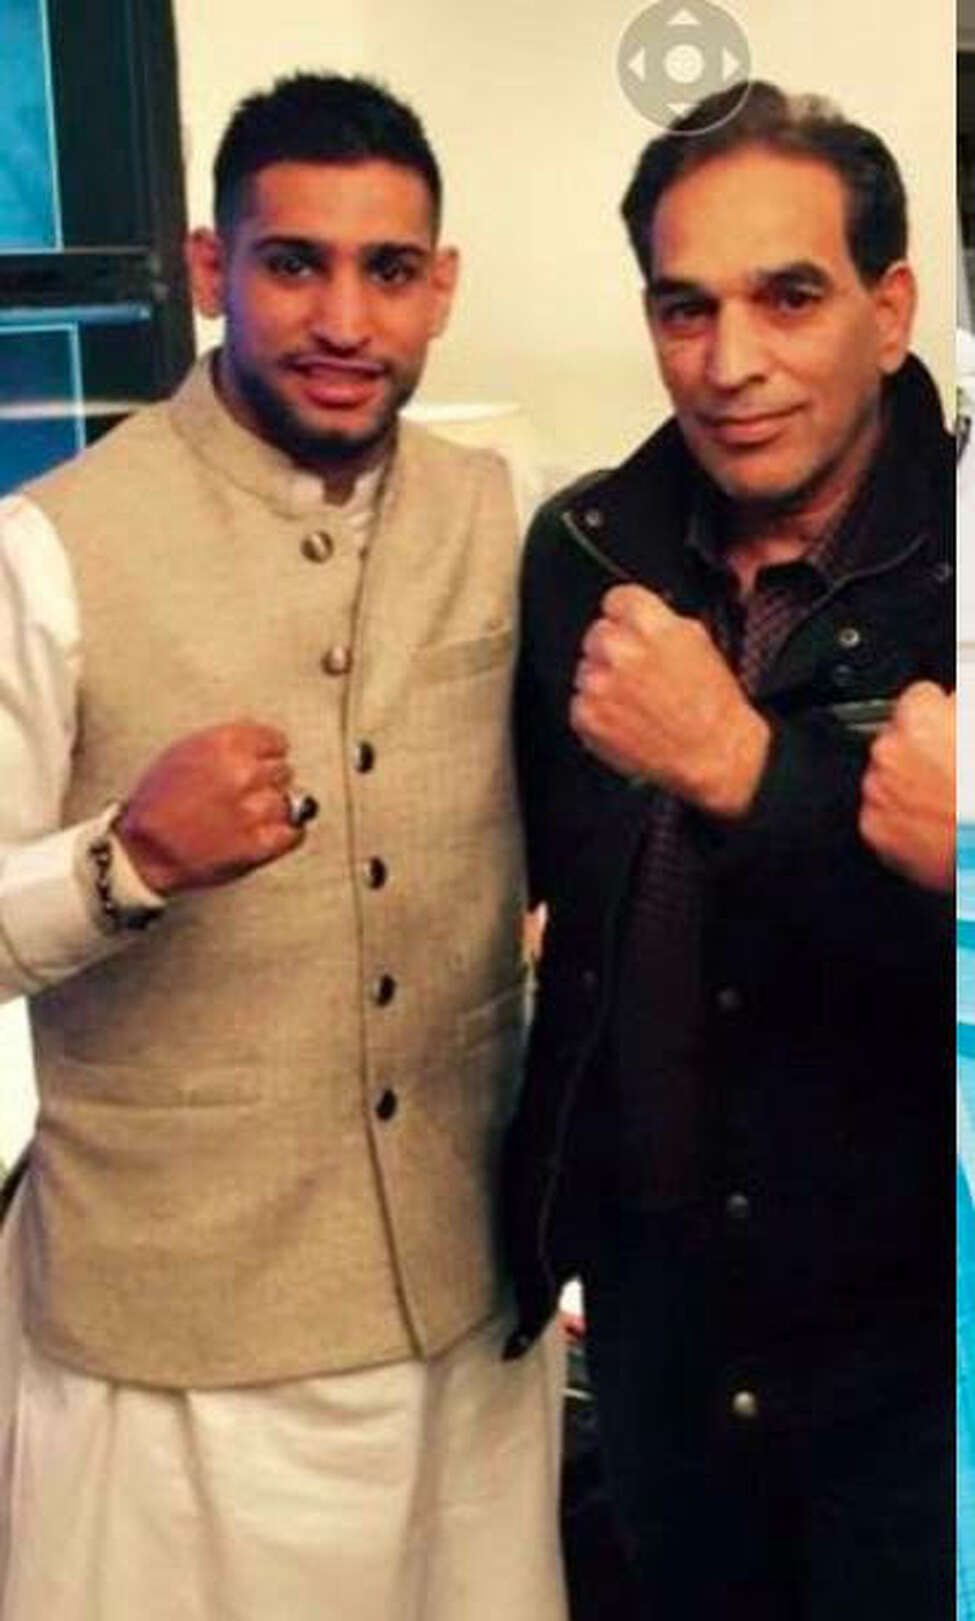 Professional boxer Amir Khan, left, in a photo with Shahed Hussain that he says was taken in 2016 at the home of Malik Riaz Hussain, a wealthy Pakistaini businessman.